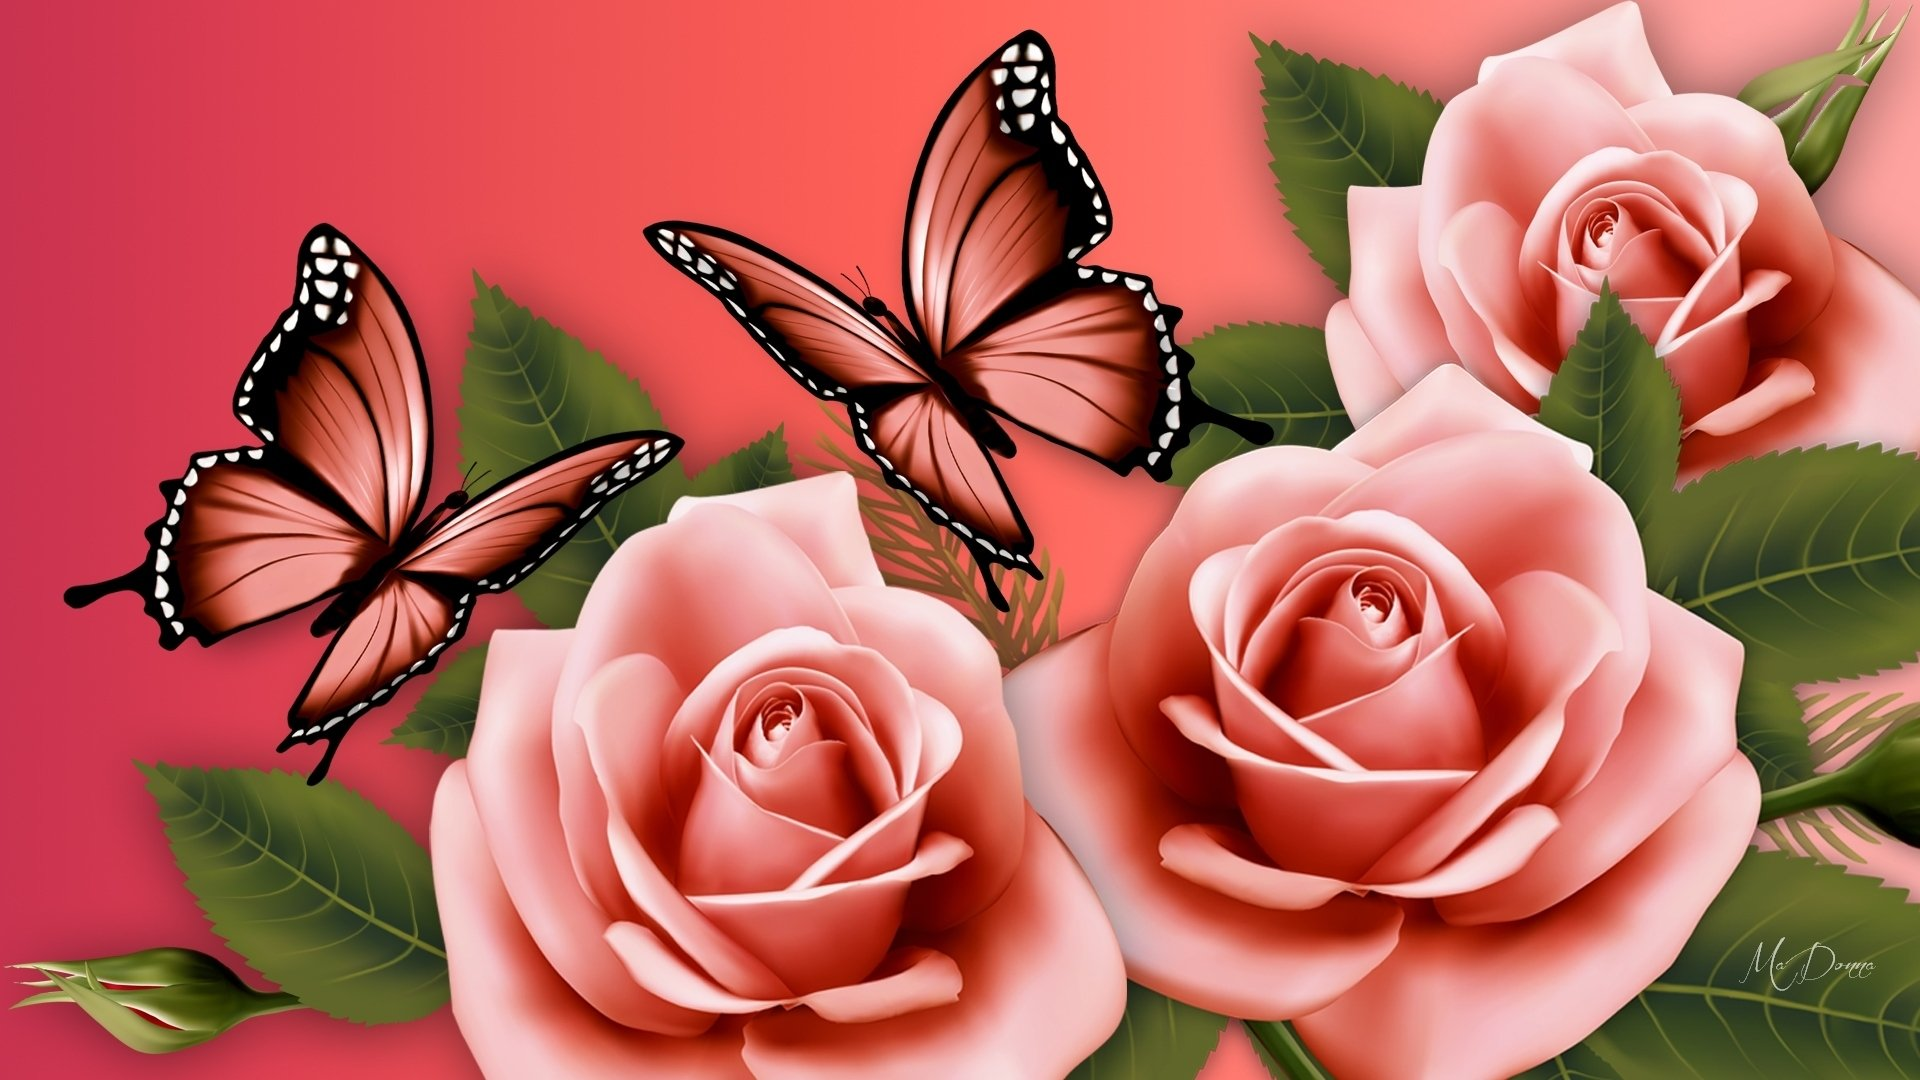 Pink Butterflies And Roses Hd Wallpaper Background Image